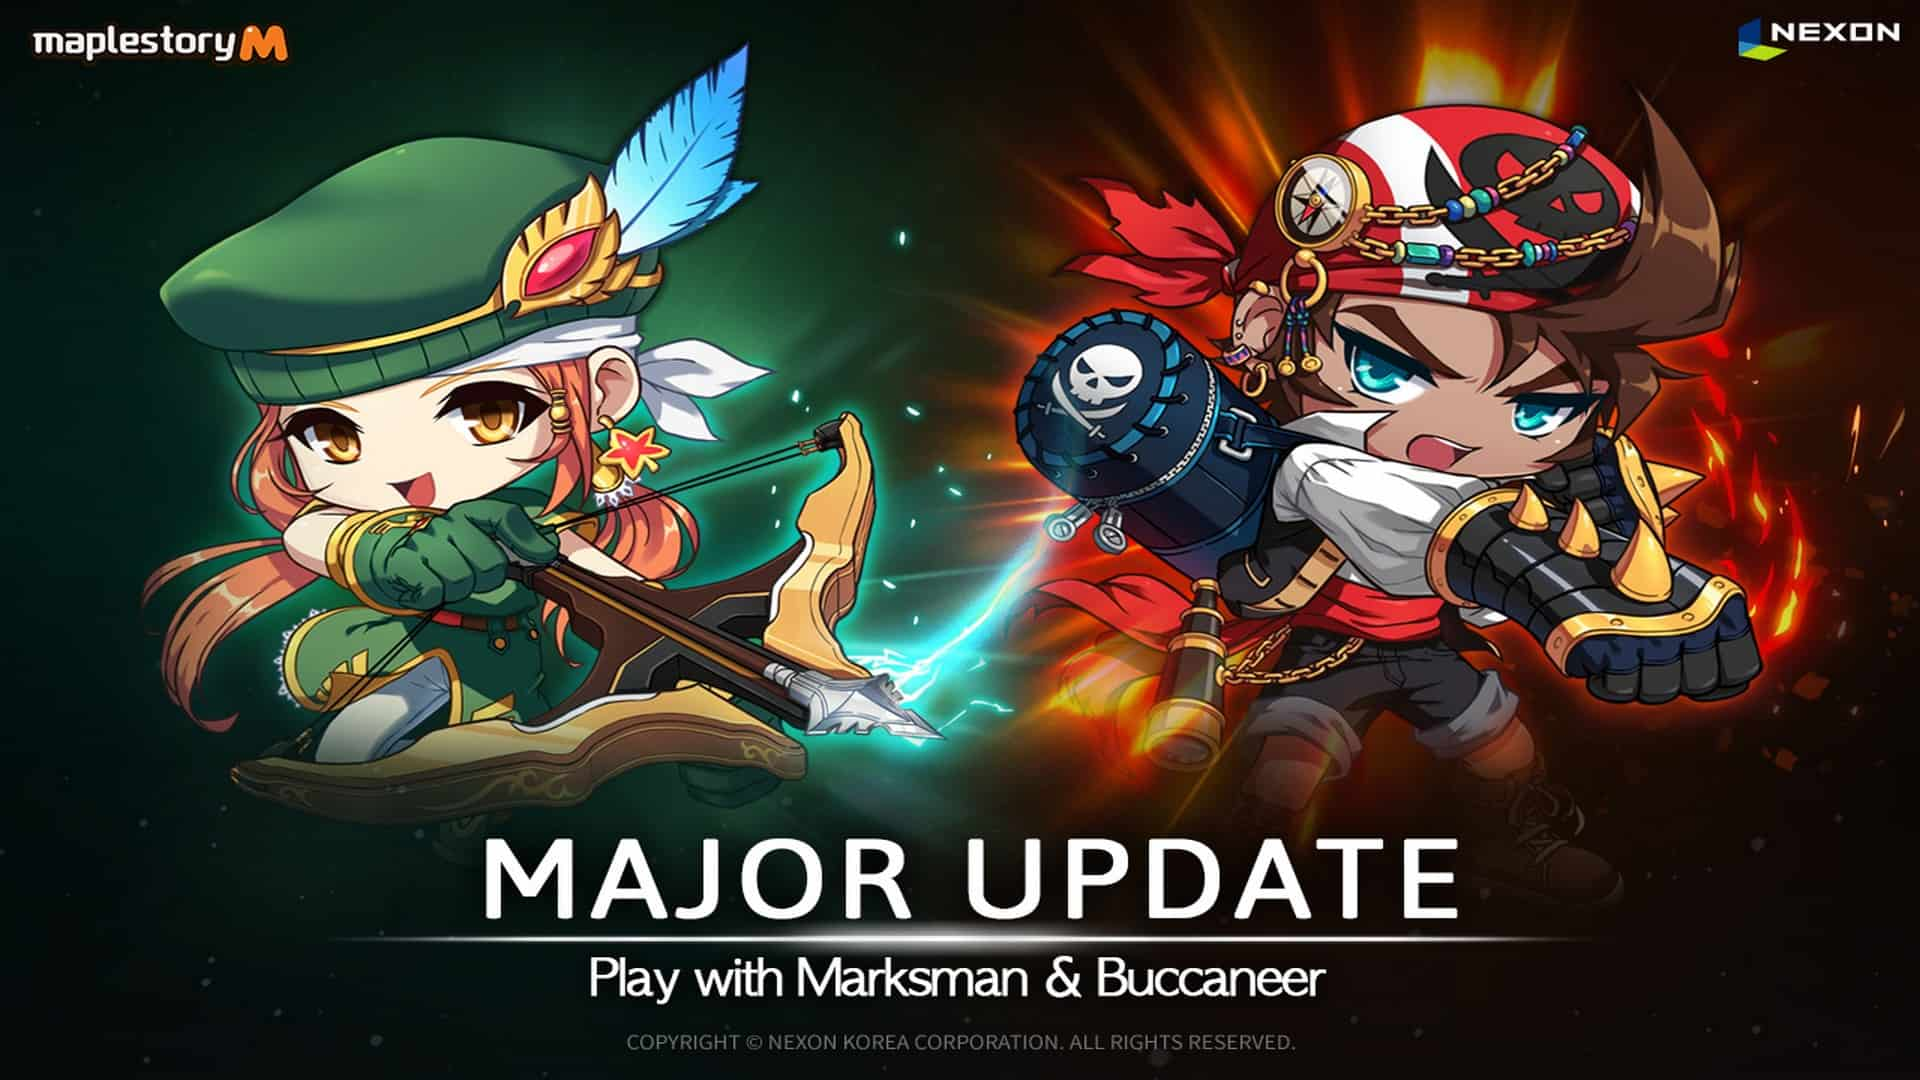 Major MapleStory M Update Brings Two New Explorer Classes; Buccaneer and Marksman